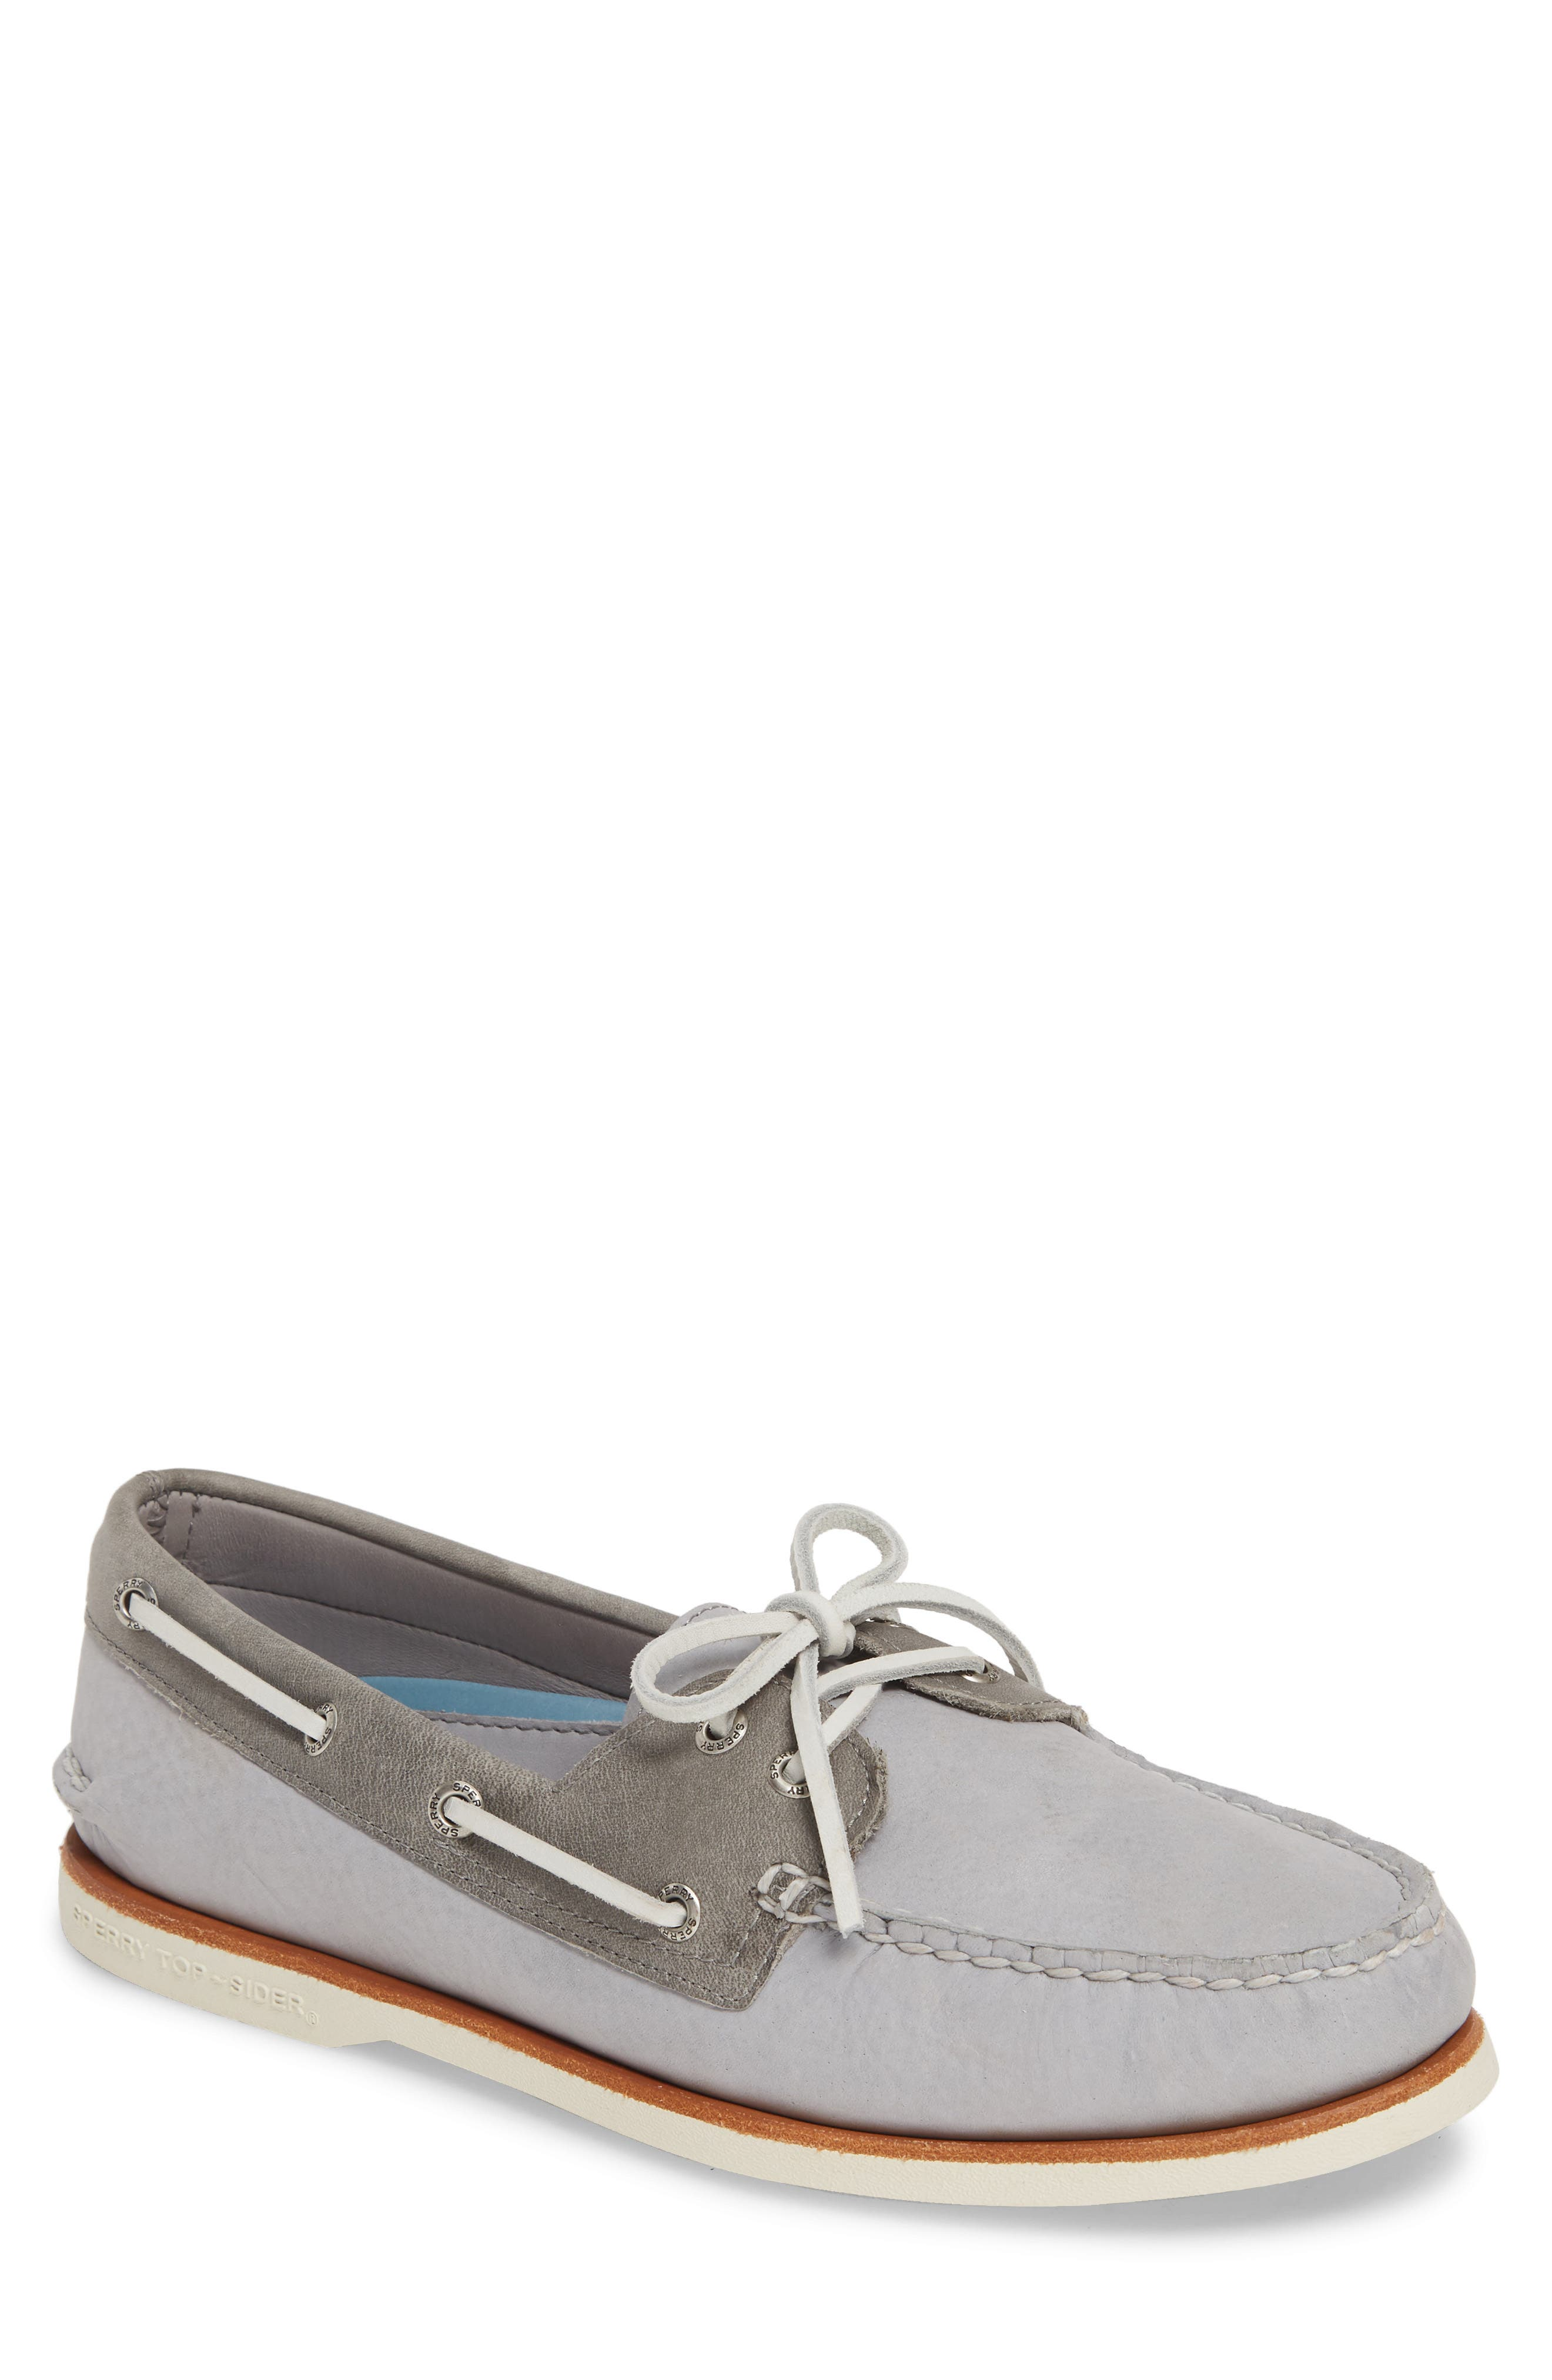 ,                             'Gold Cup - Authentic Original' Boat Shoe,                             Main thumbnail 1, color,                             GREY/GREY LEATHER